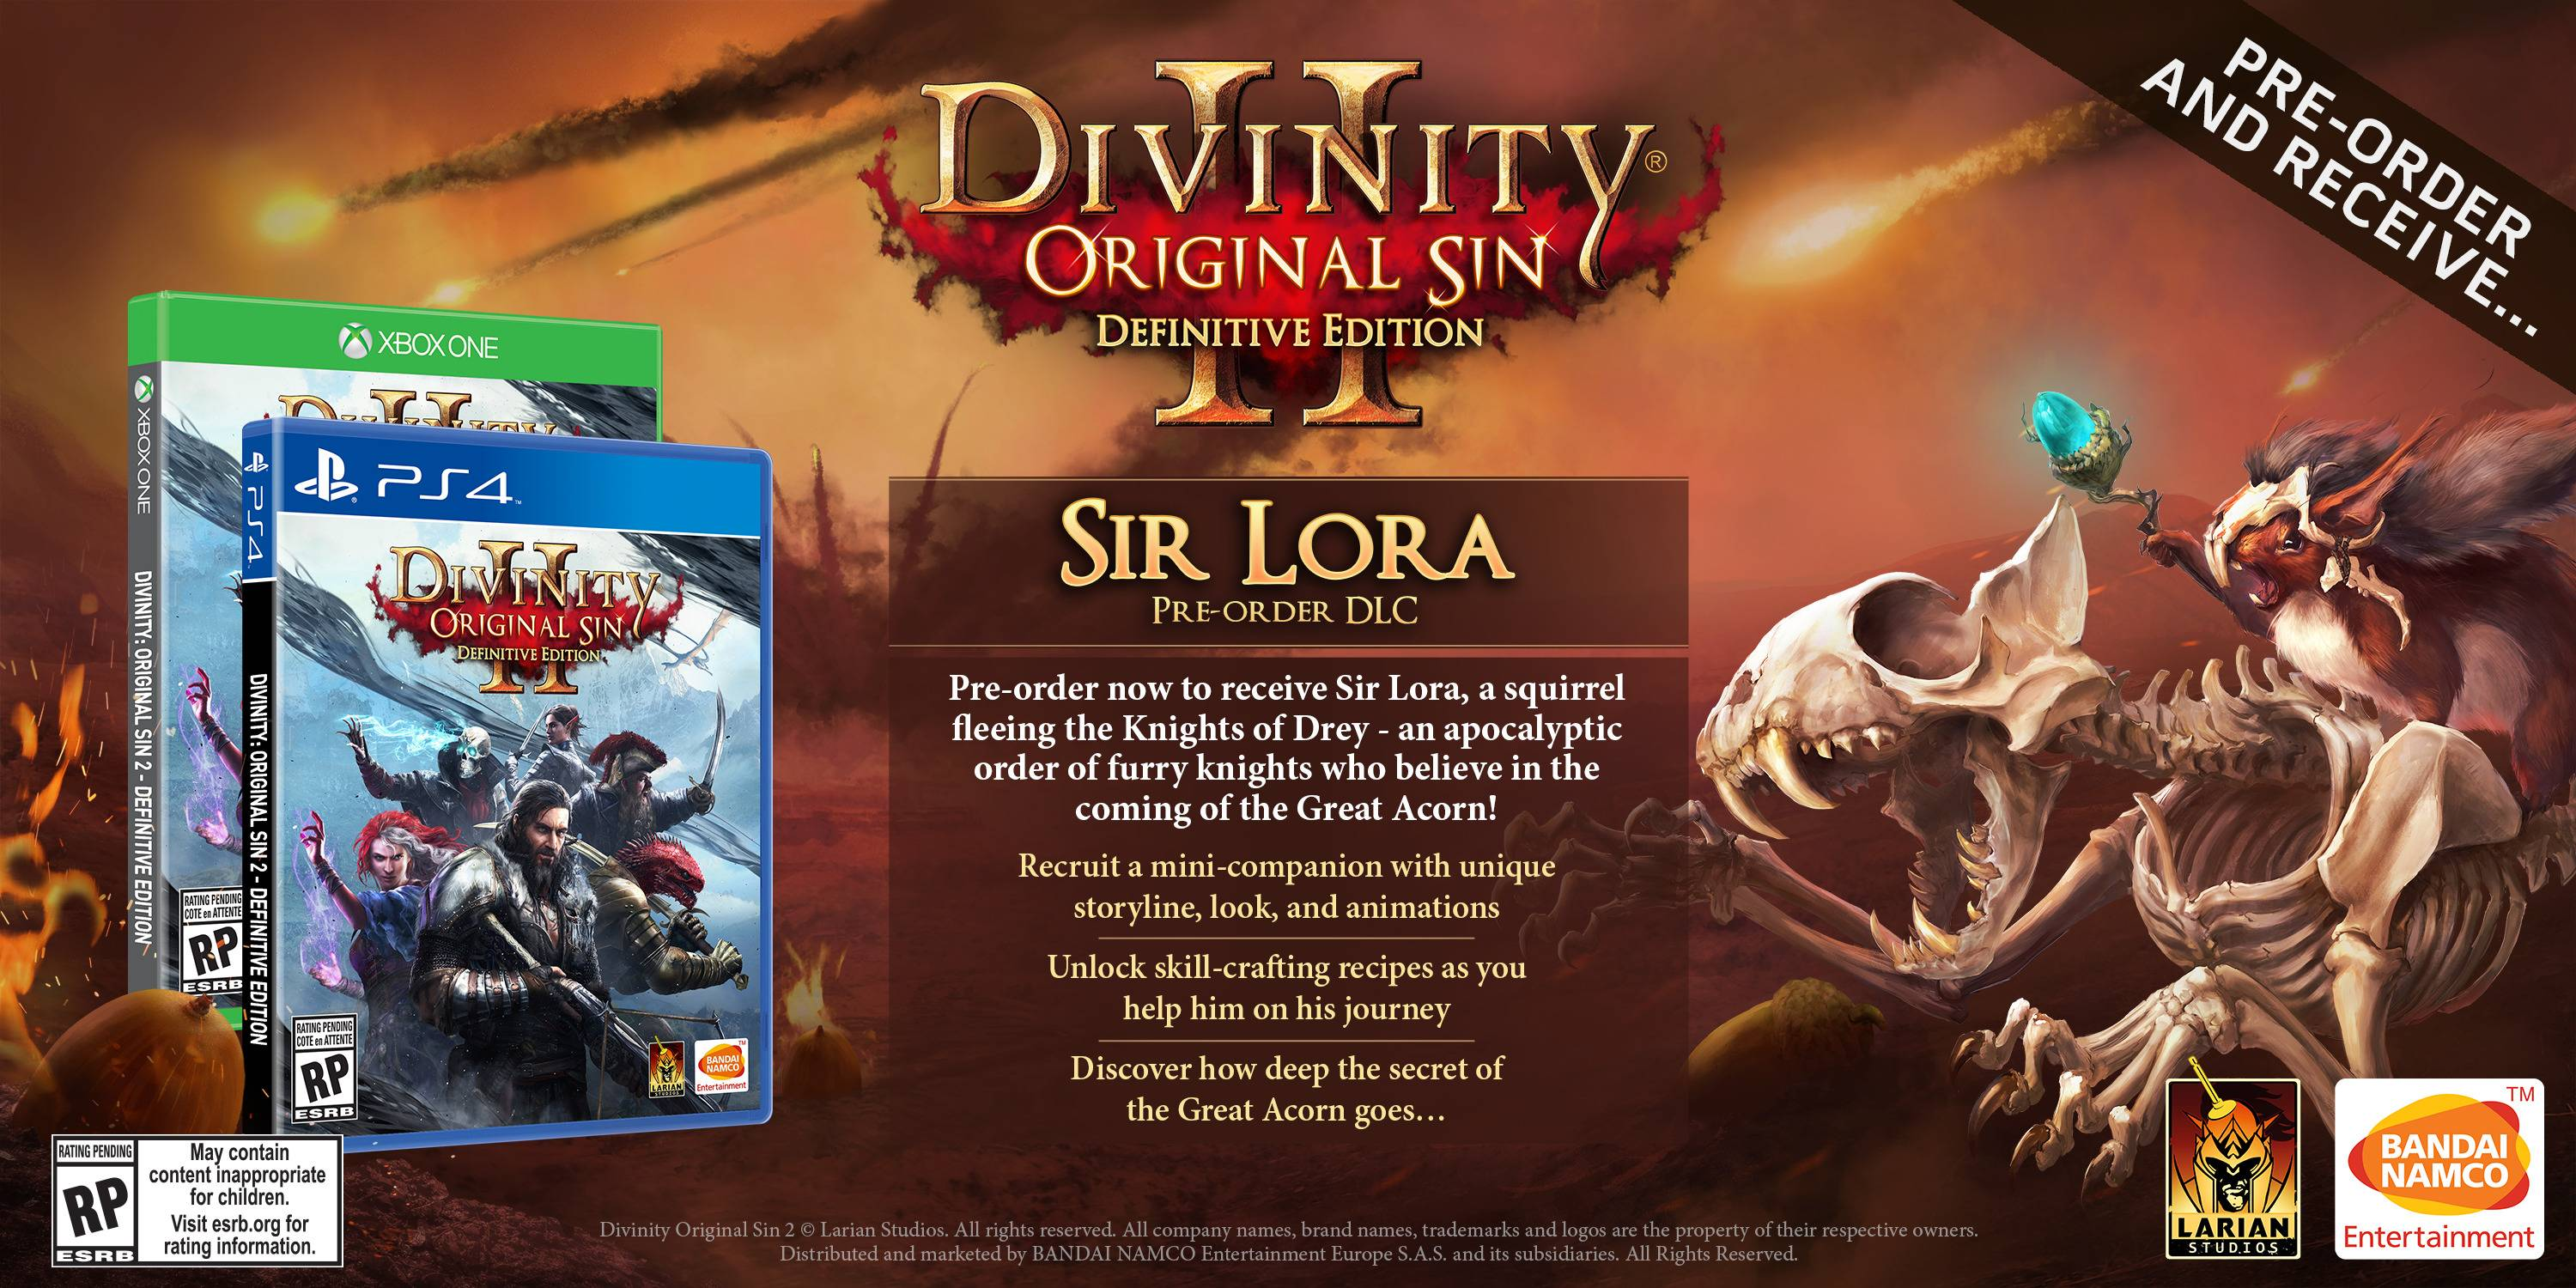 Divinity: Original Sin 2 Definitive Edition, Namco